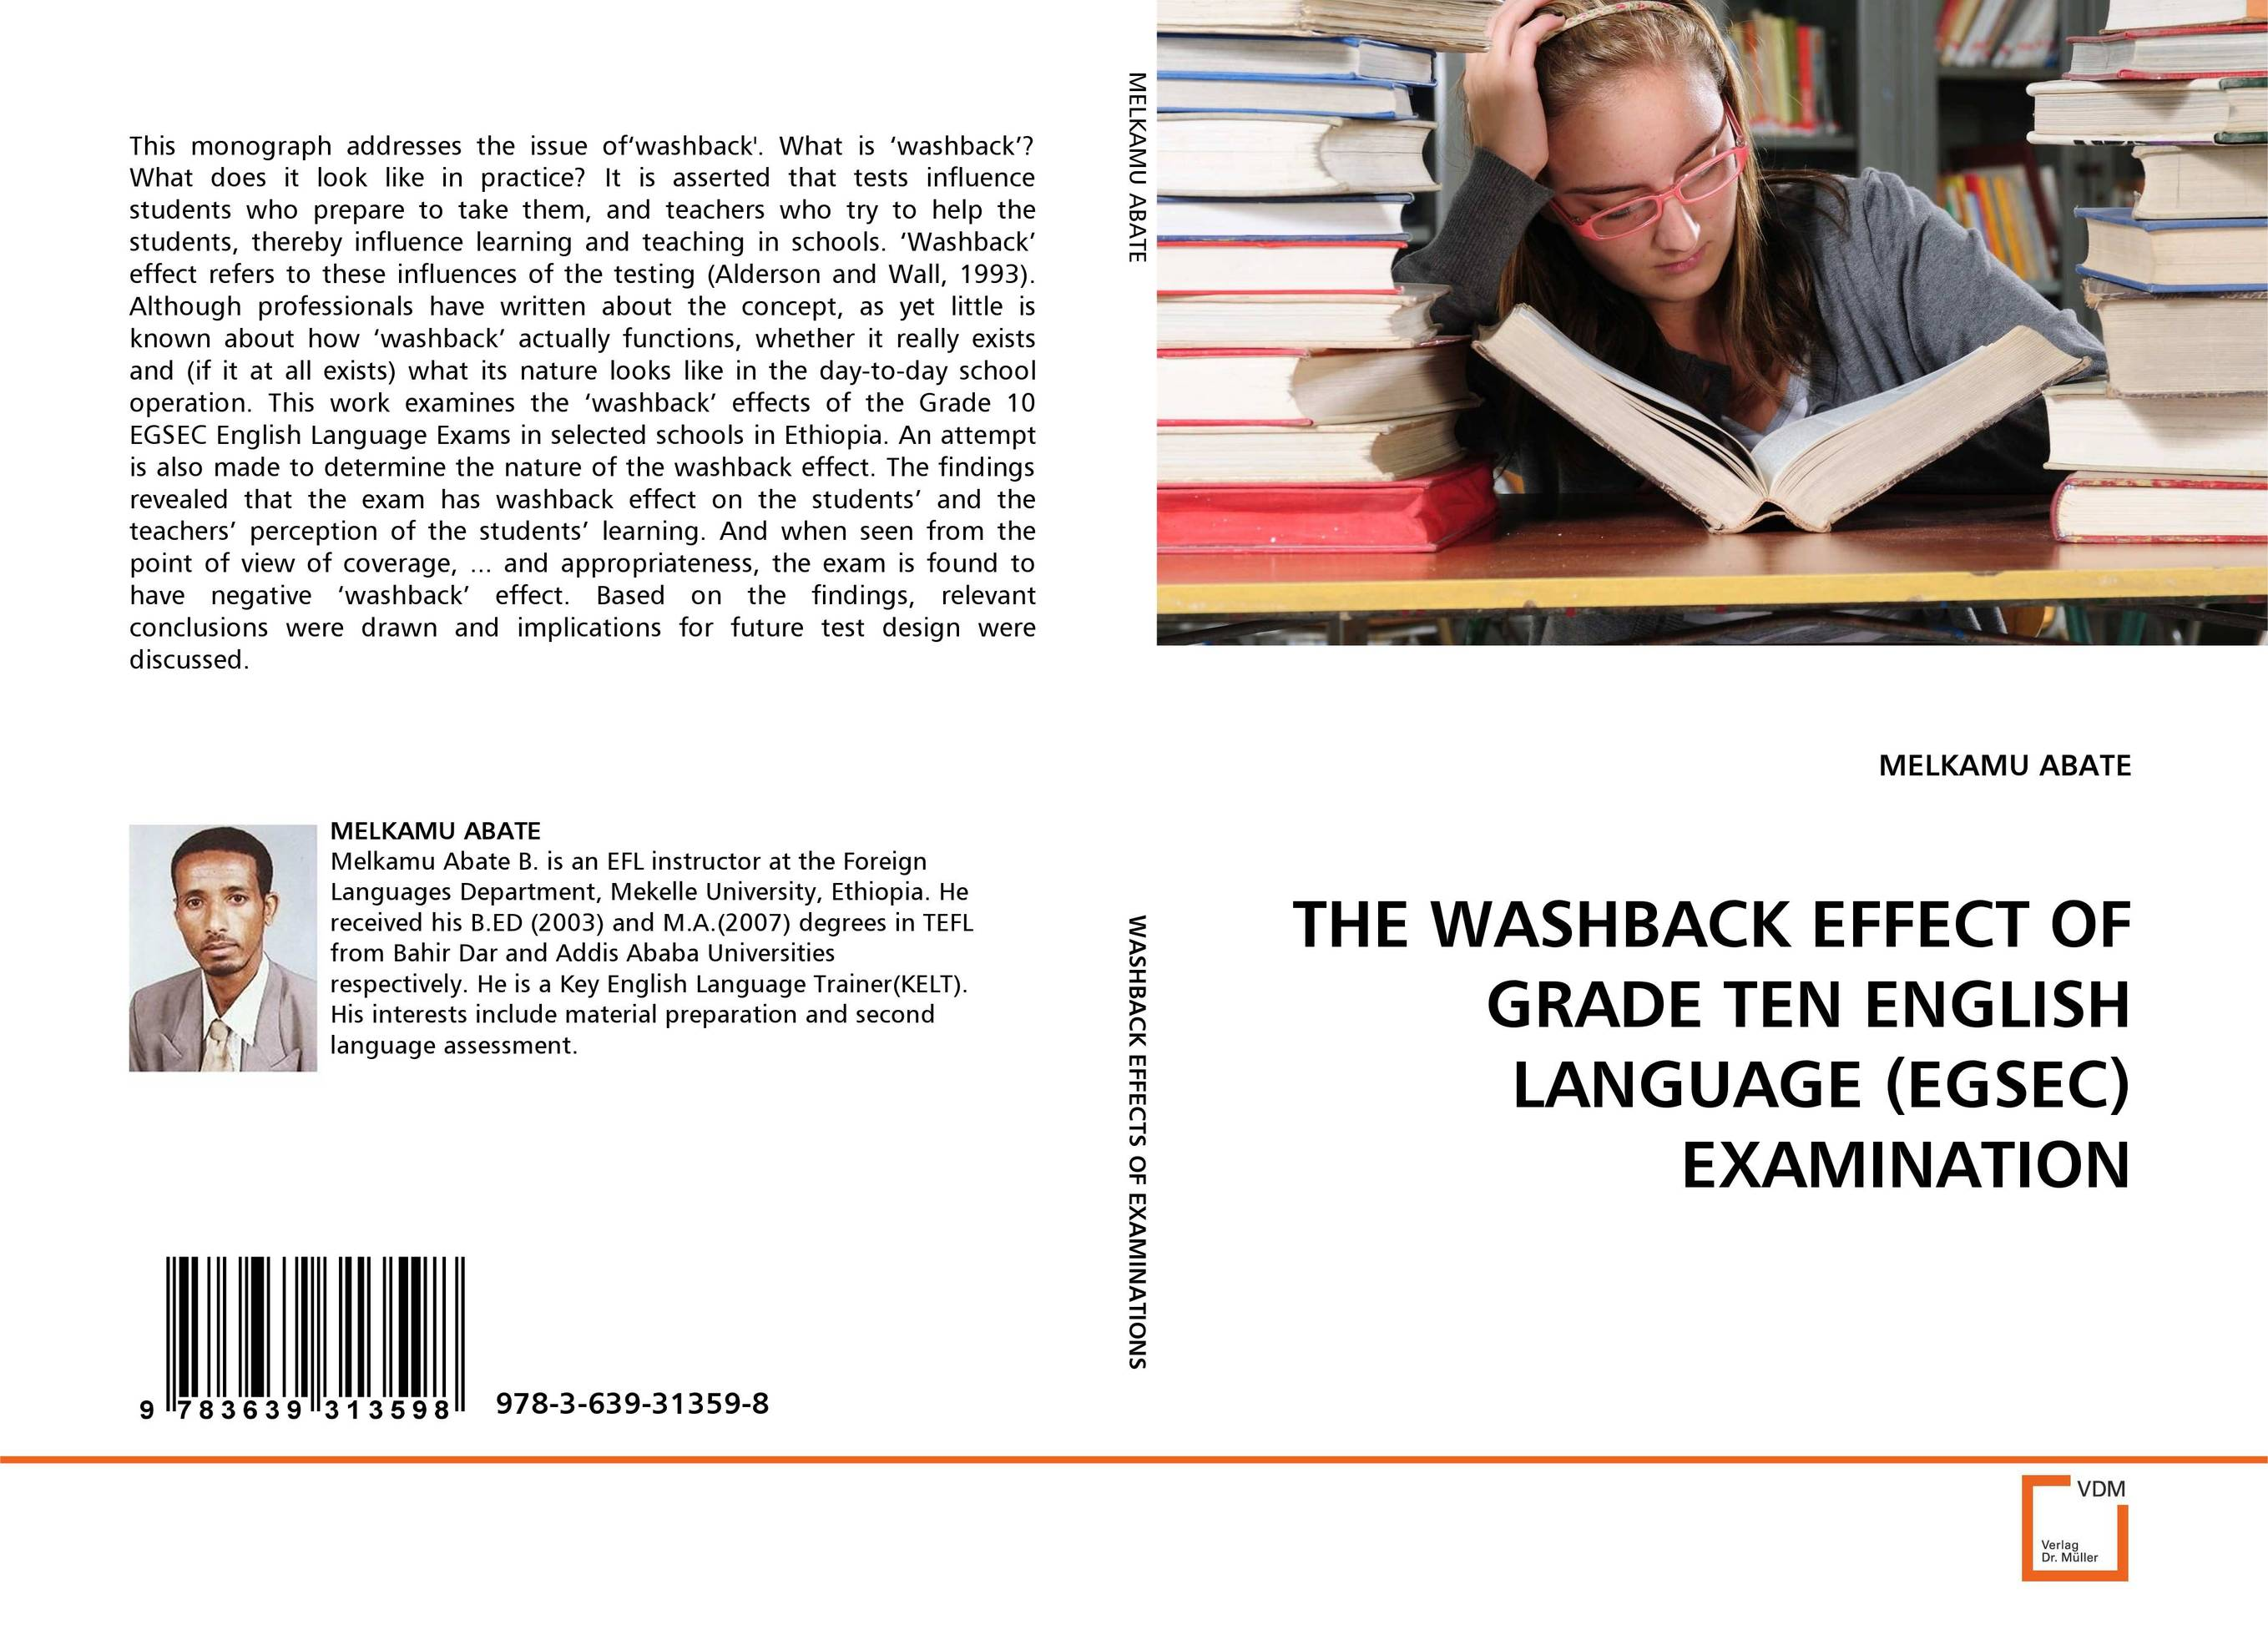 THE WASHBACK EFFECT OF GRADE TEN ENGLISH LANGUAGE (EGSEC) EXAMINATION купить